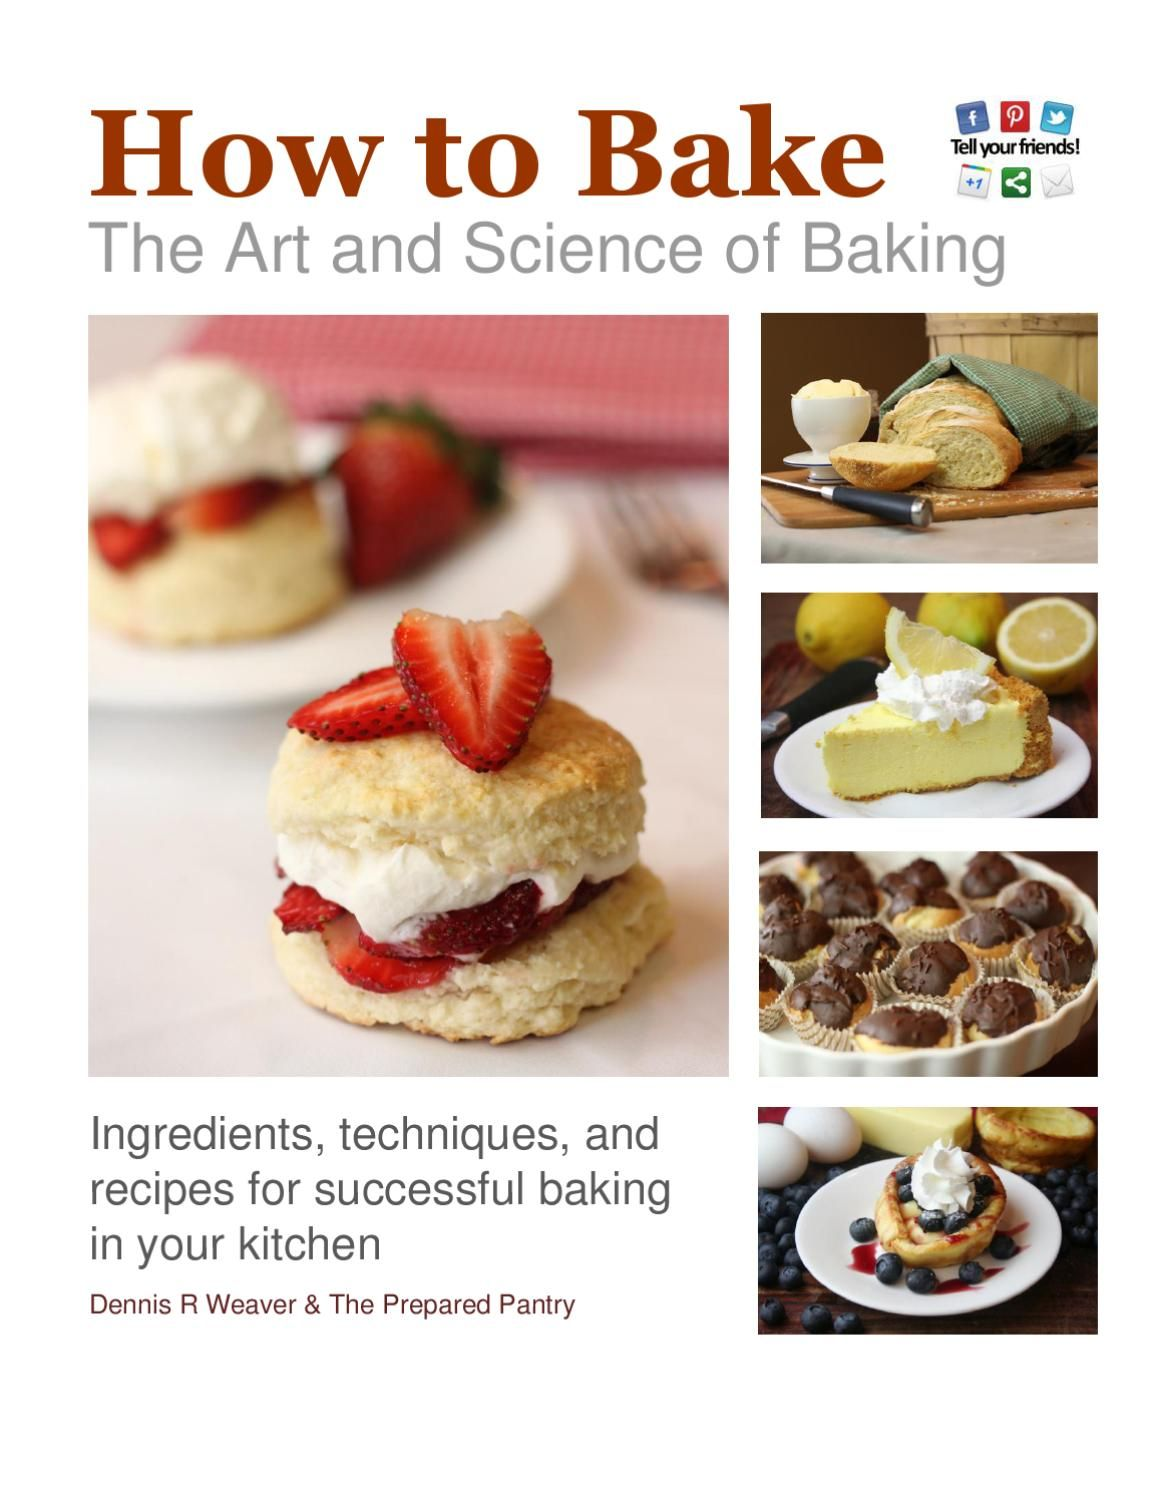 How to Bake: The Art and Science of Baking_Complete